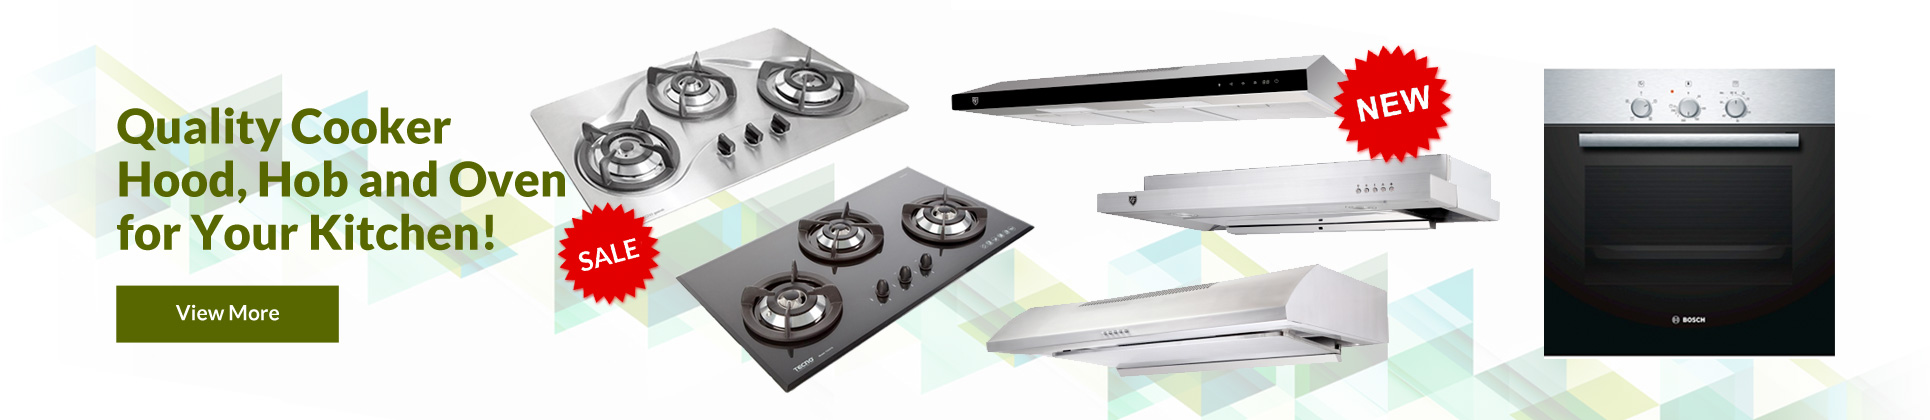 Cooker Hood, Hob and Oven